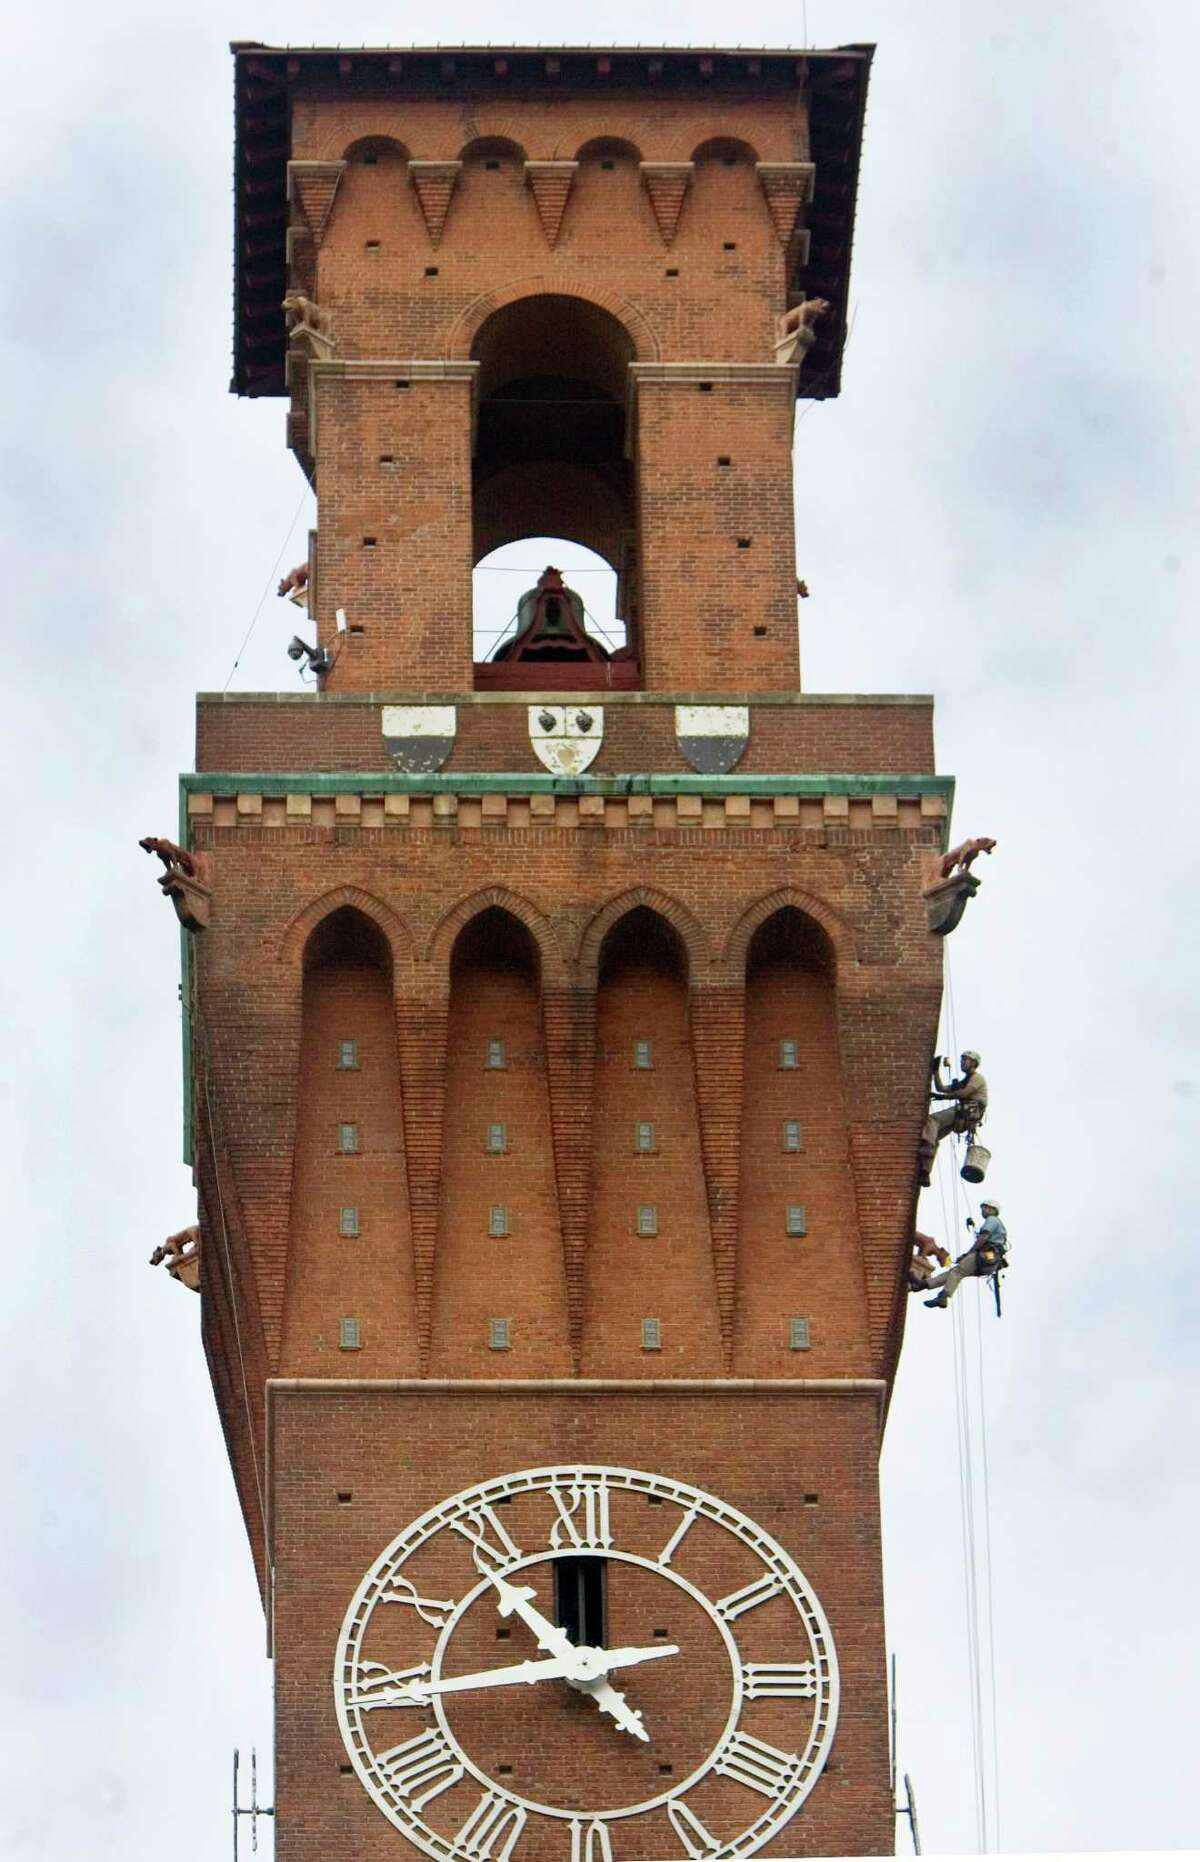 Workers descend down the Republican-American's clock tower to investigate the condition of each face of the 240-foot-tall structure in Waterbury, Conn. Thursday June 18th 2015. The results of their inspection will be used to design repairs to the 109-year-old clock tower. (Steven Valenti/The Republican-American via AP) MANDATORY CREDIT